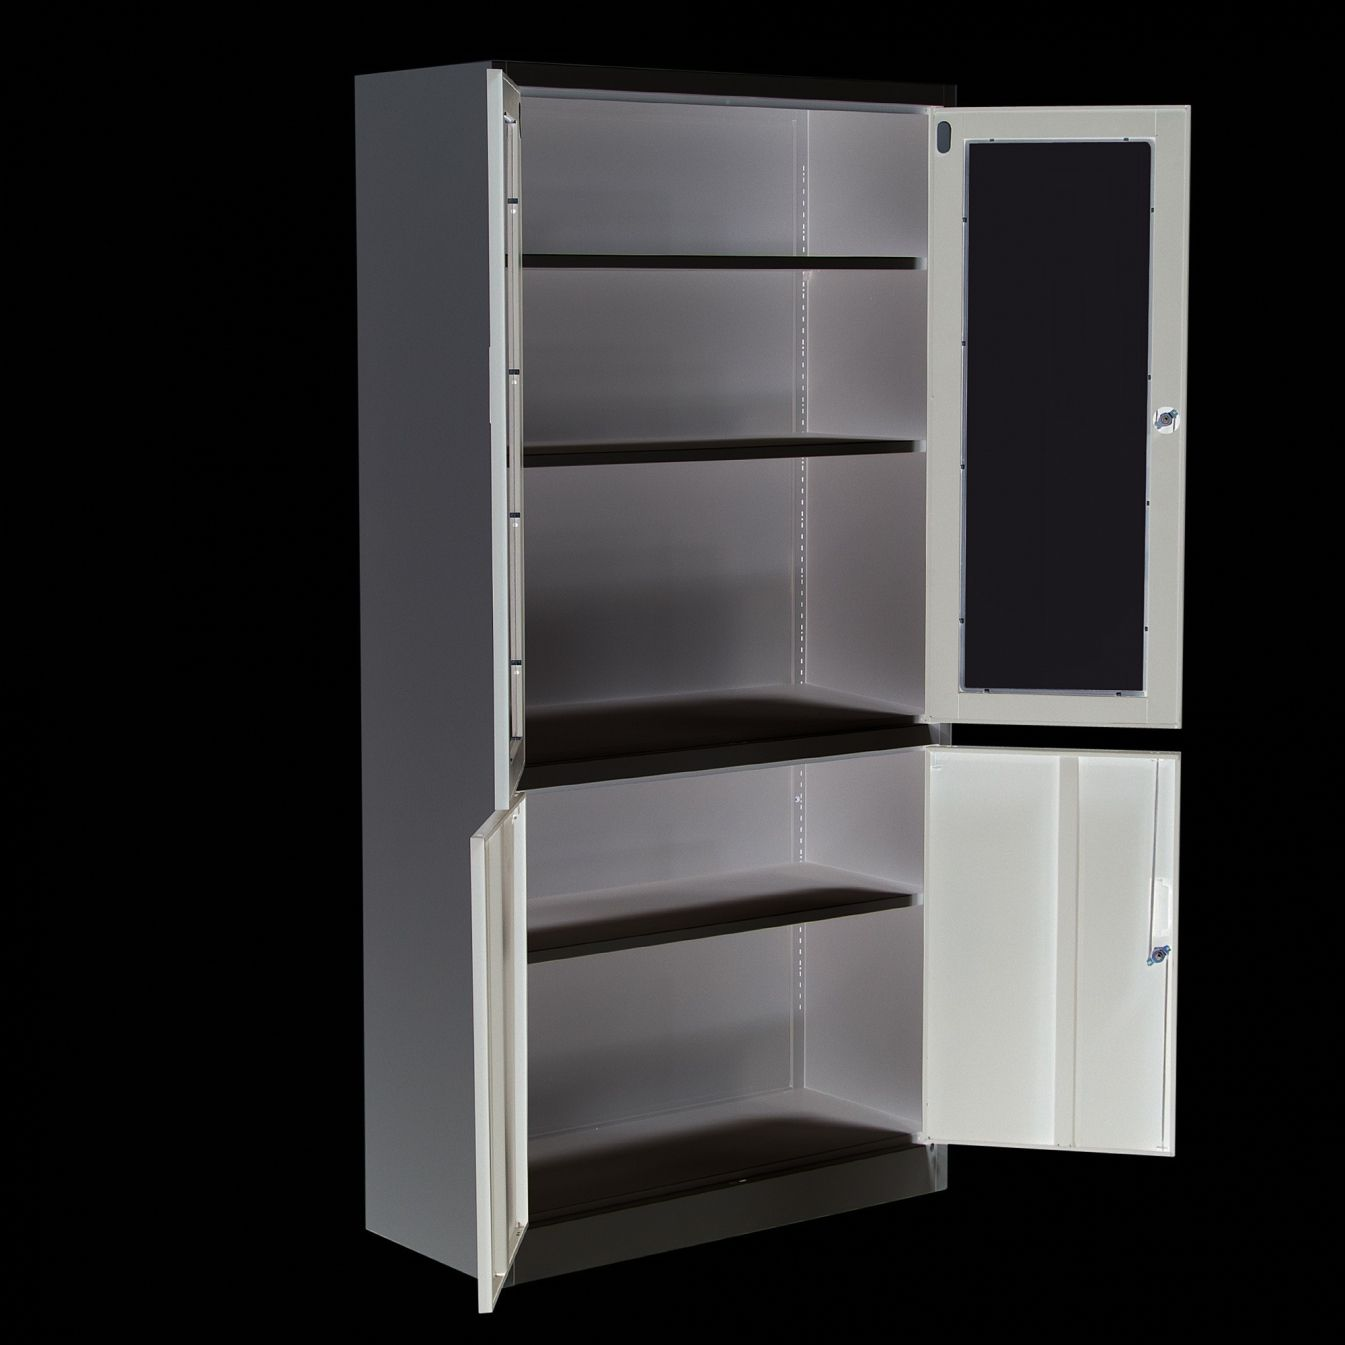 Target 5 Shelf Bookcase With Doors Cool Furniture Ideas Check More At Http